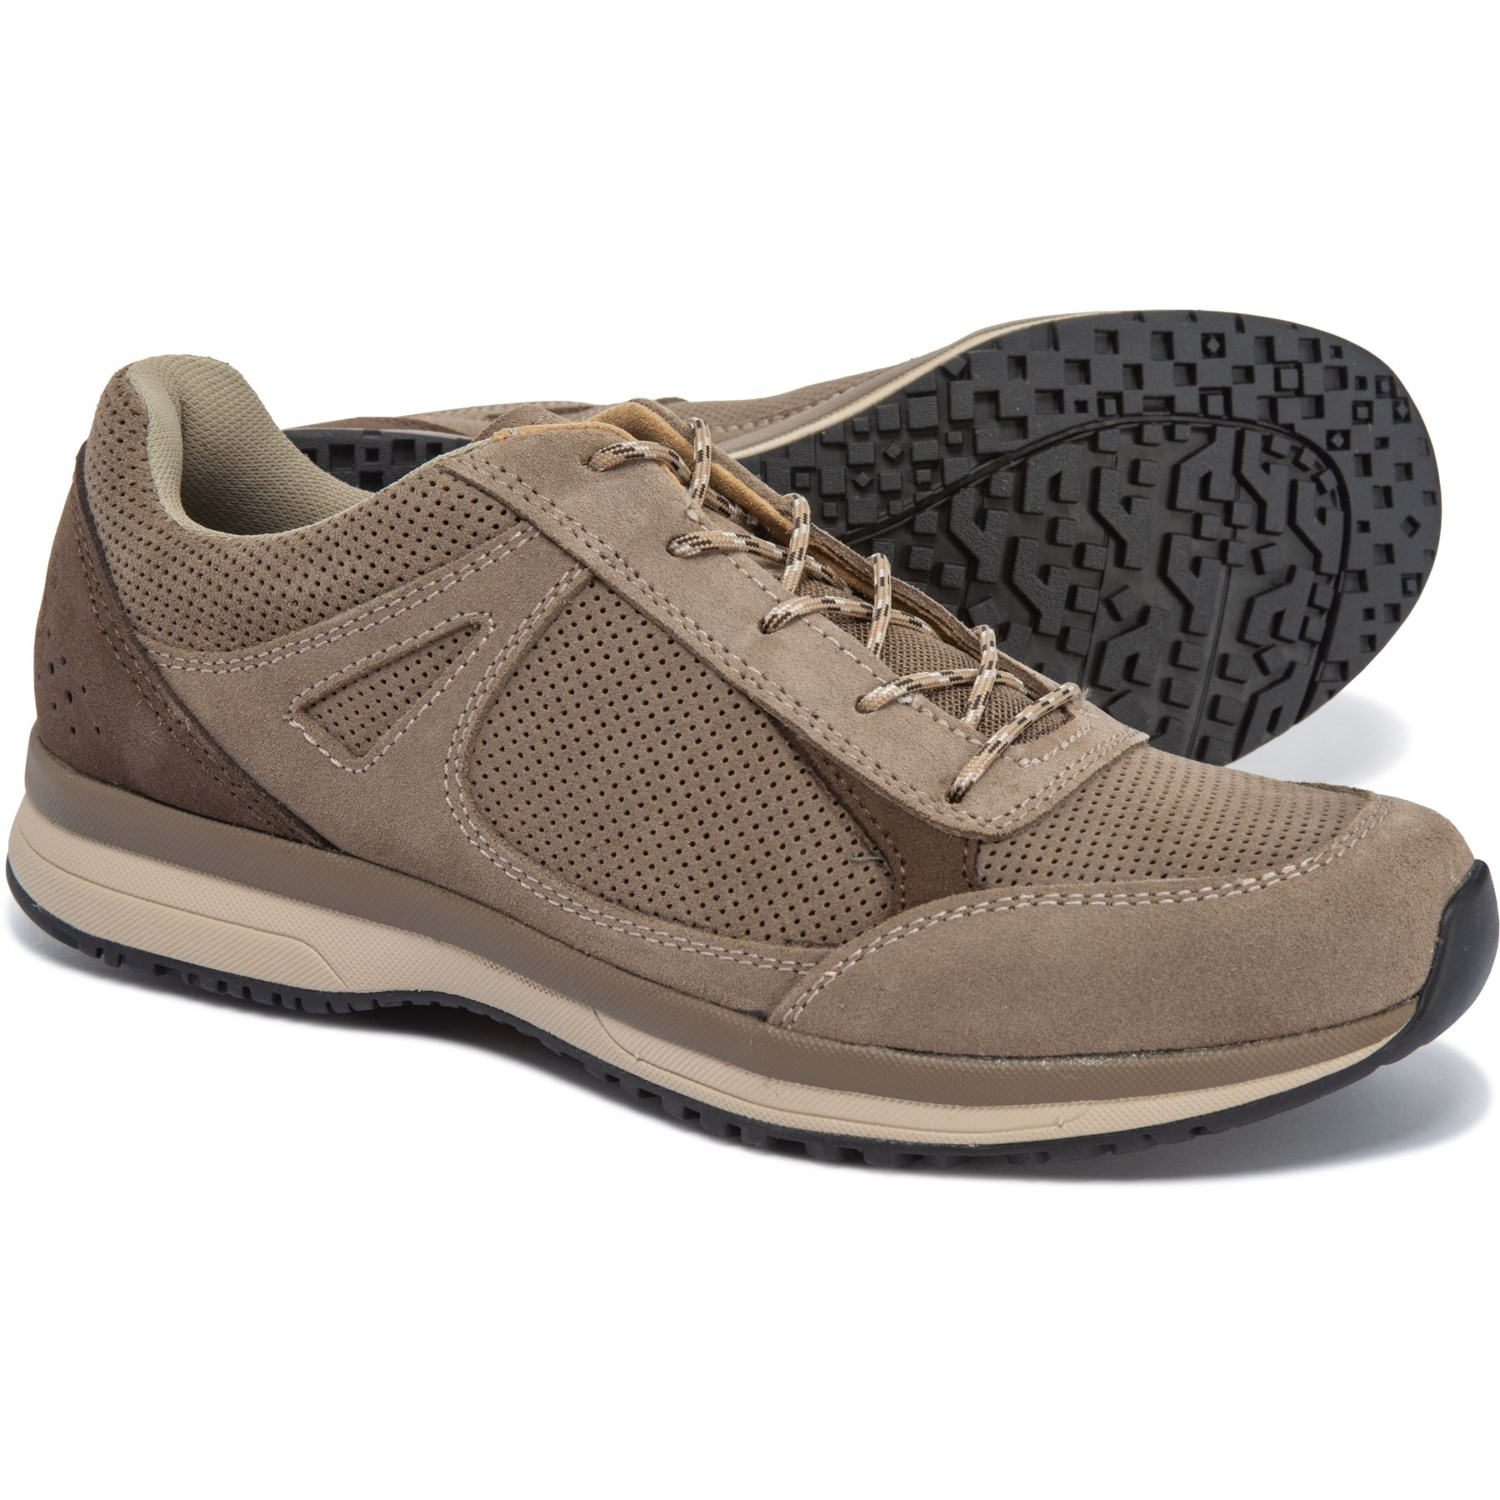 lowest price d294c 6f2c1 Asolo Made in Europe Asama Hiking Shoes - Leather (For Women)